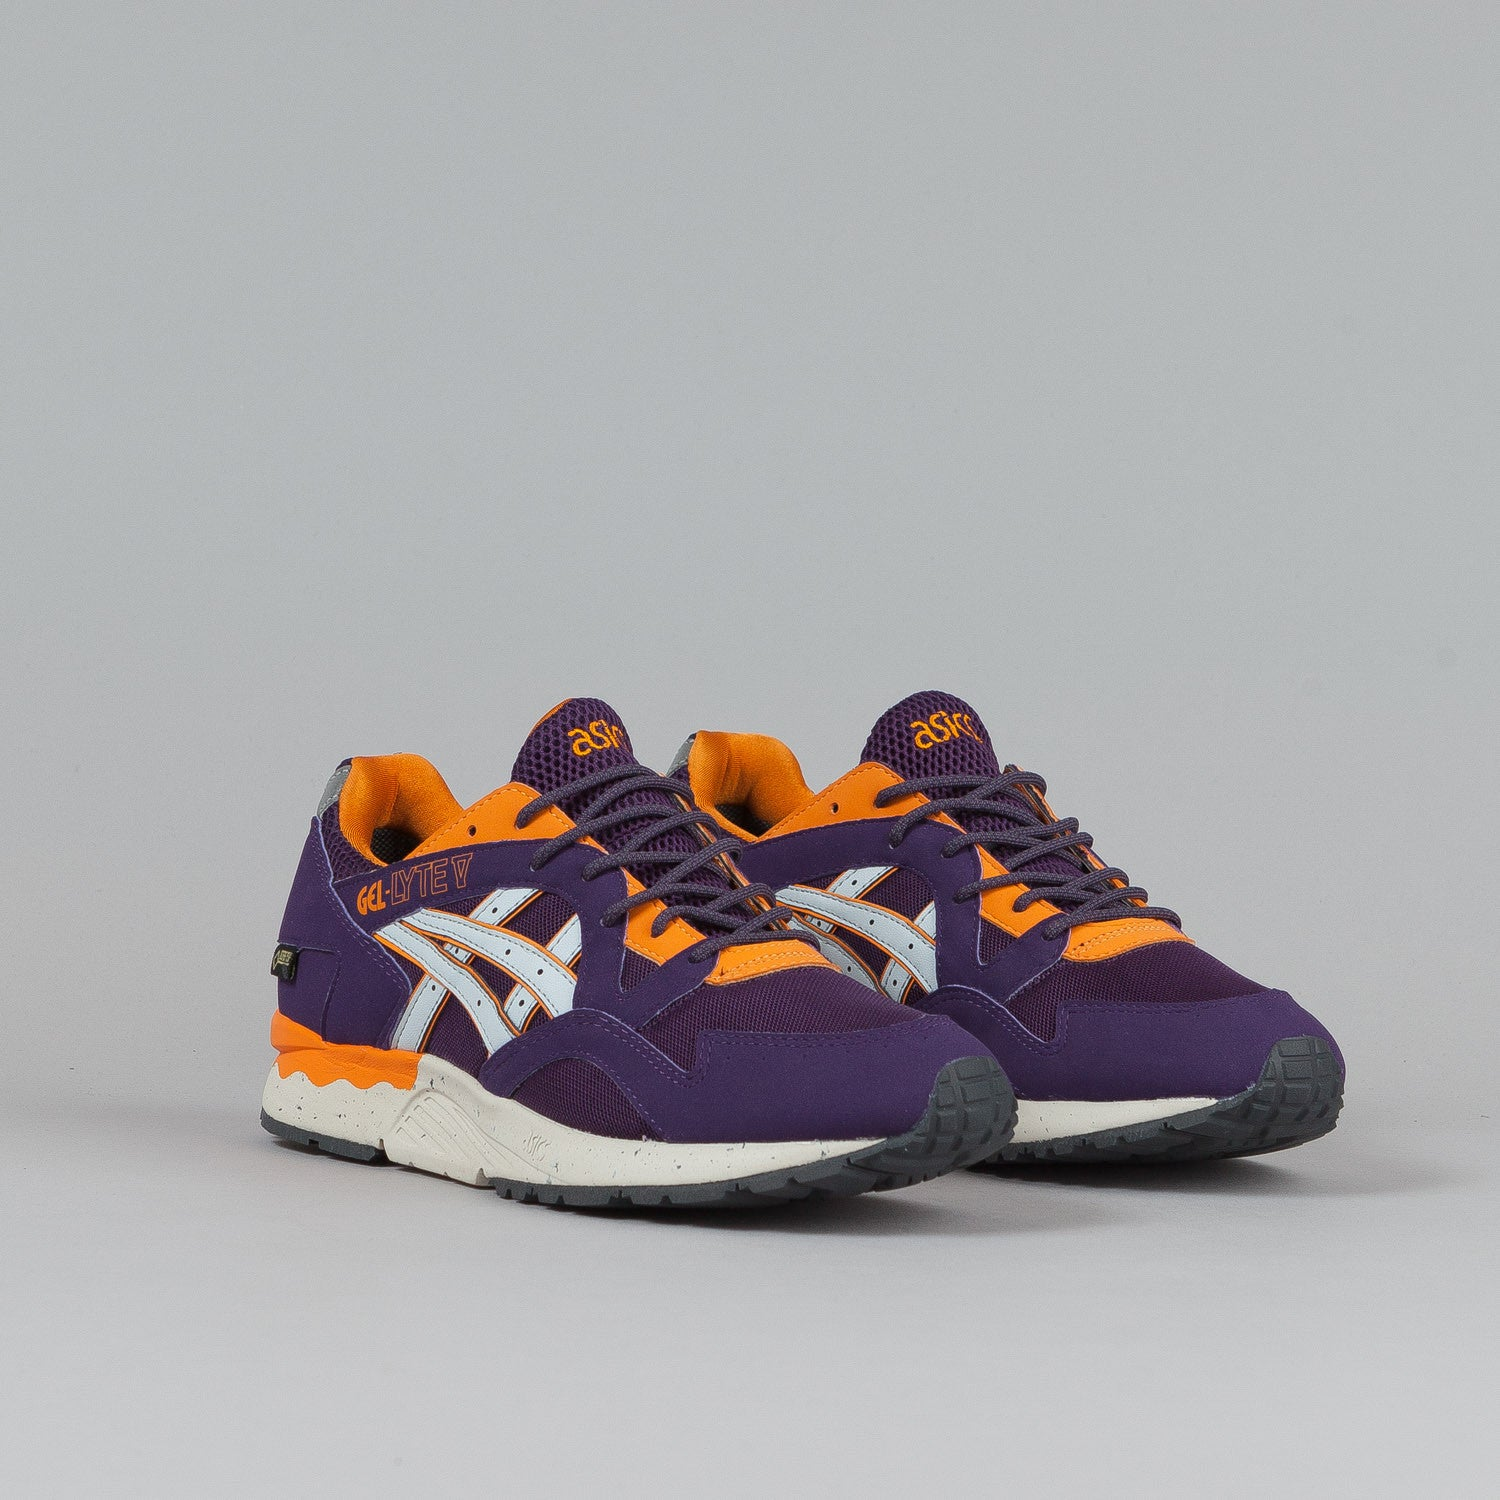 Asics Gel Lyte V Shoes Purple / Soft Grey (Gore Tex)